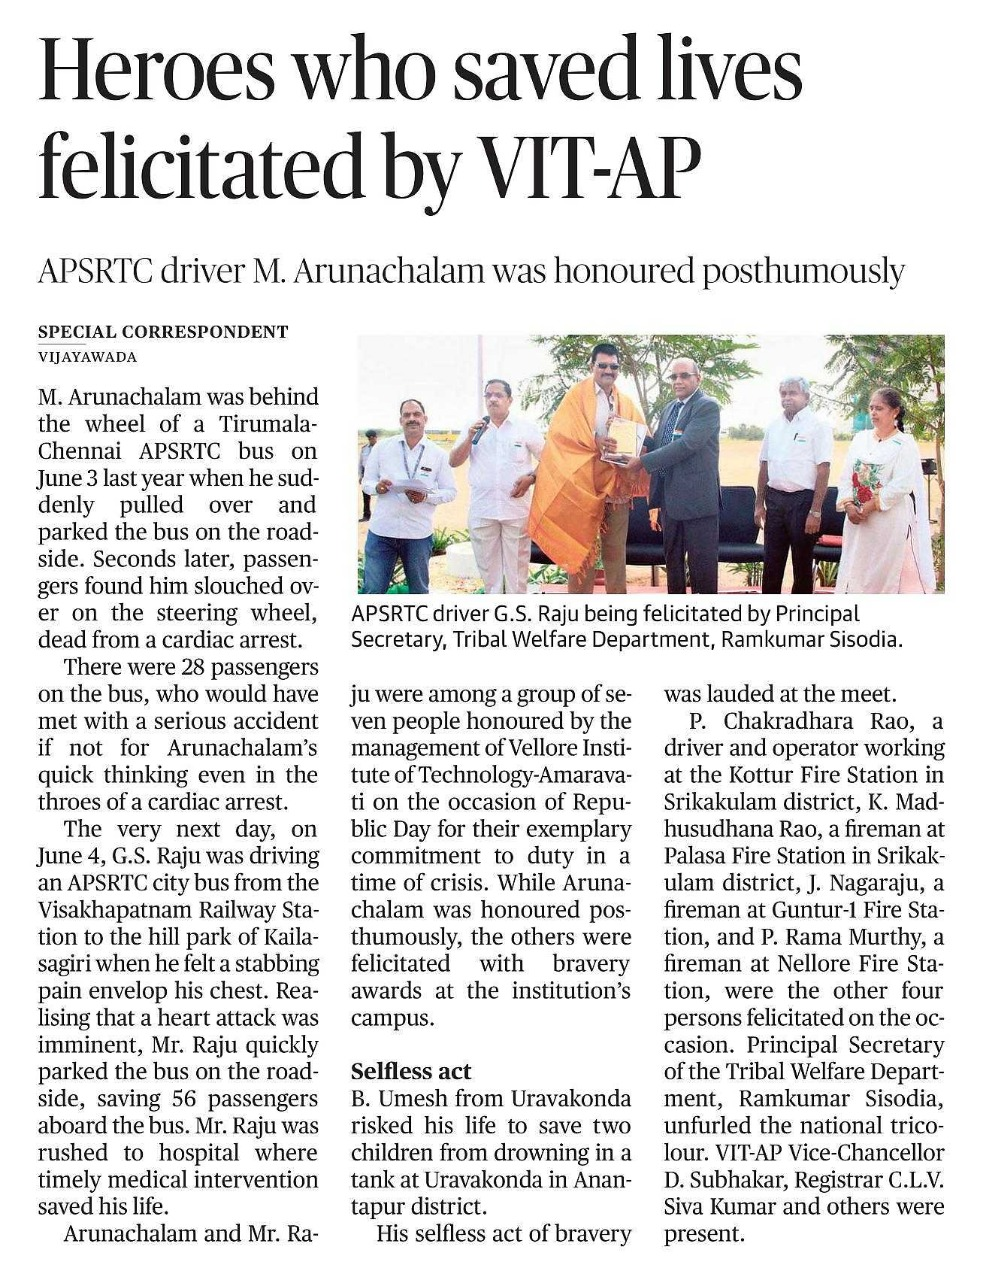 Heroes who saved lives felicitated by VIT-AP